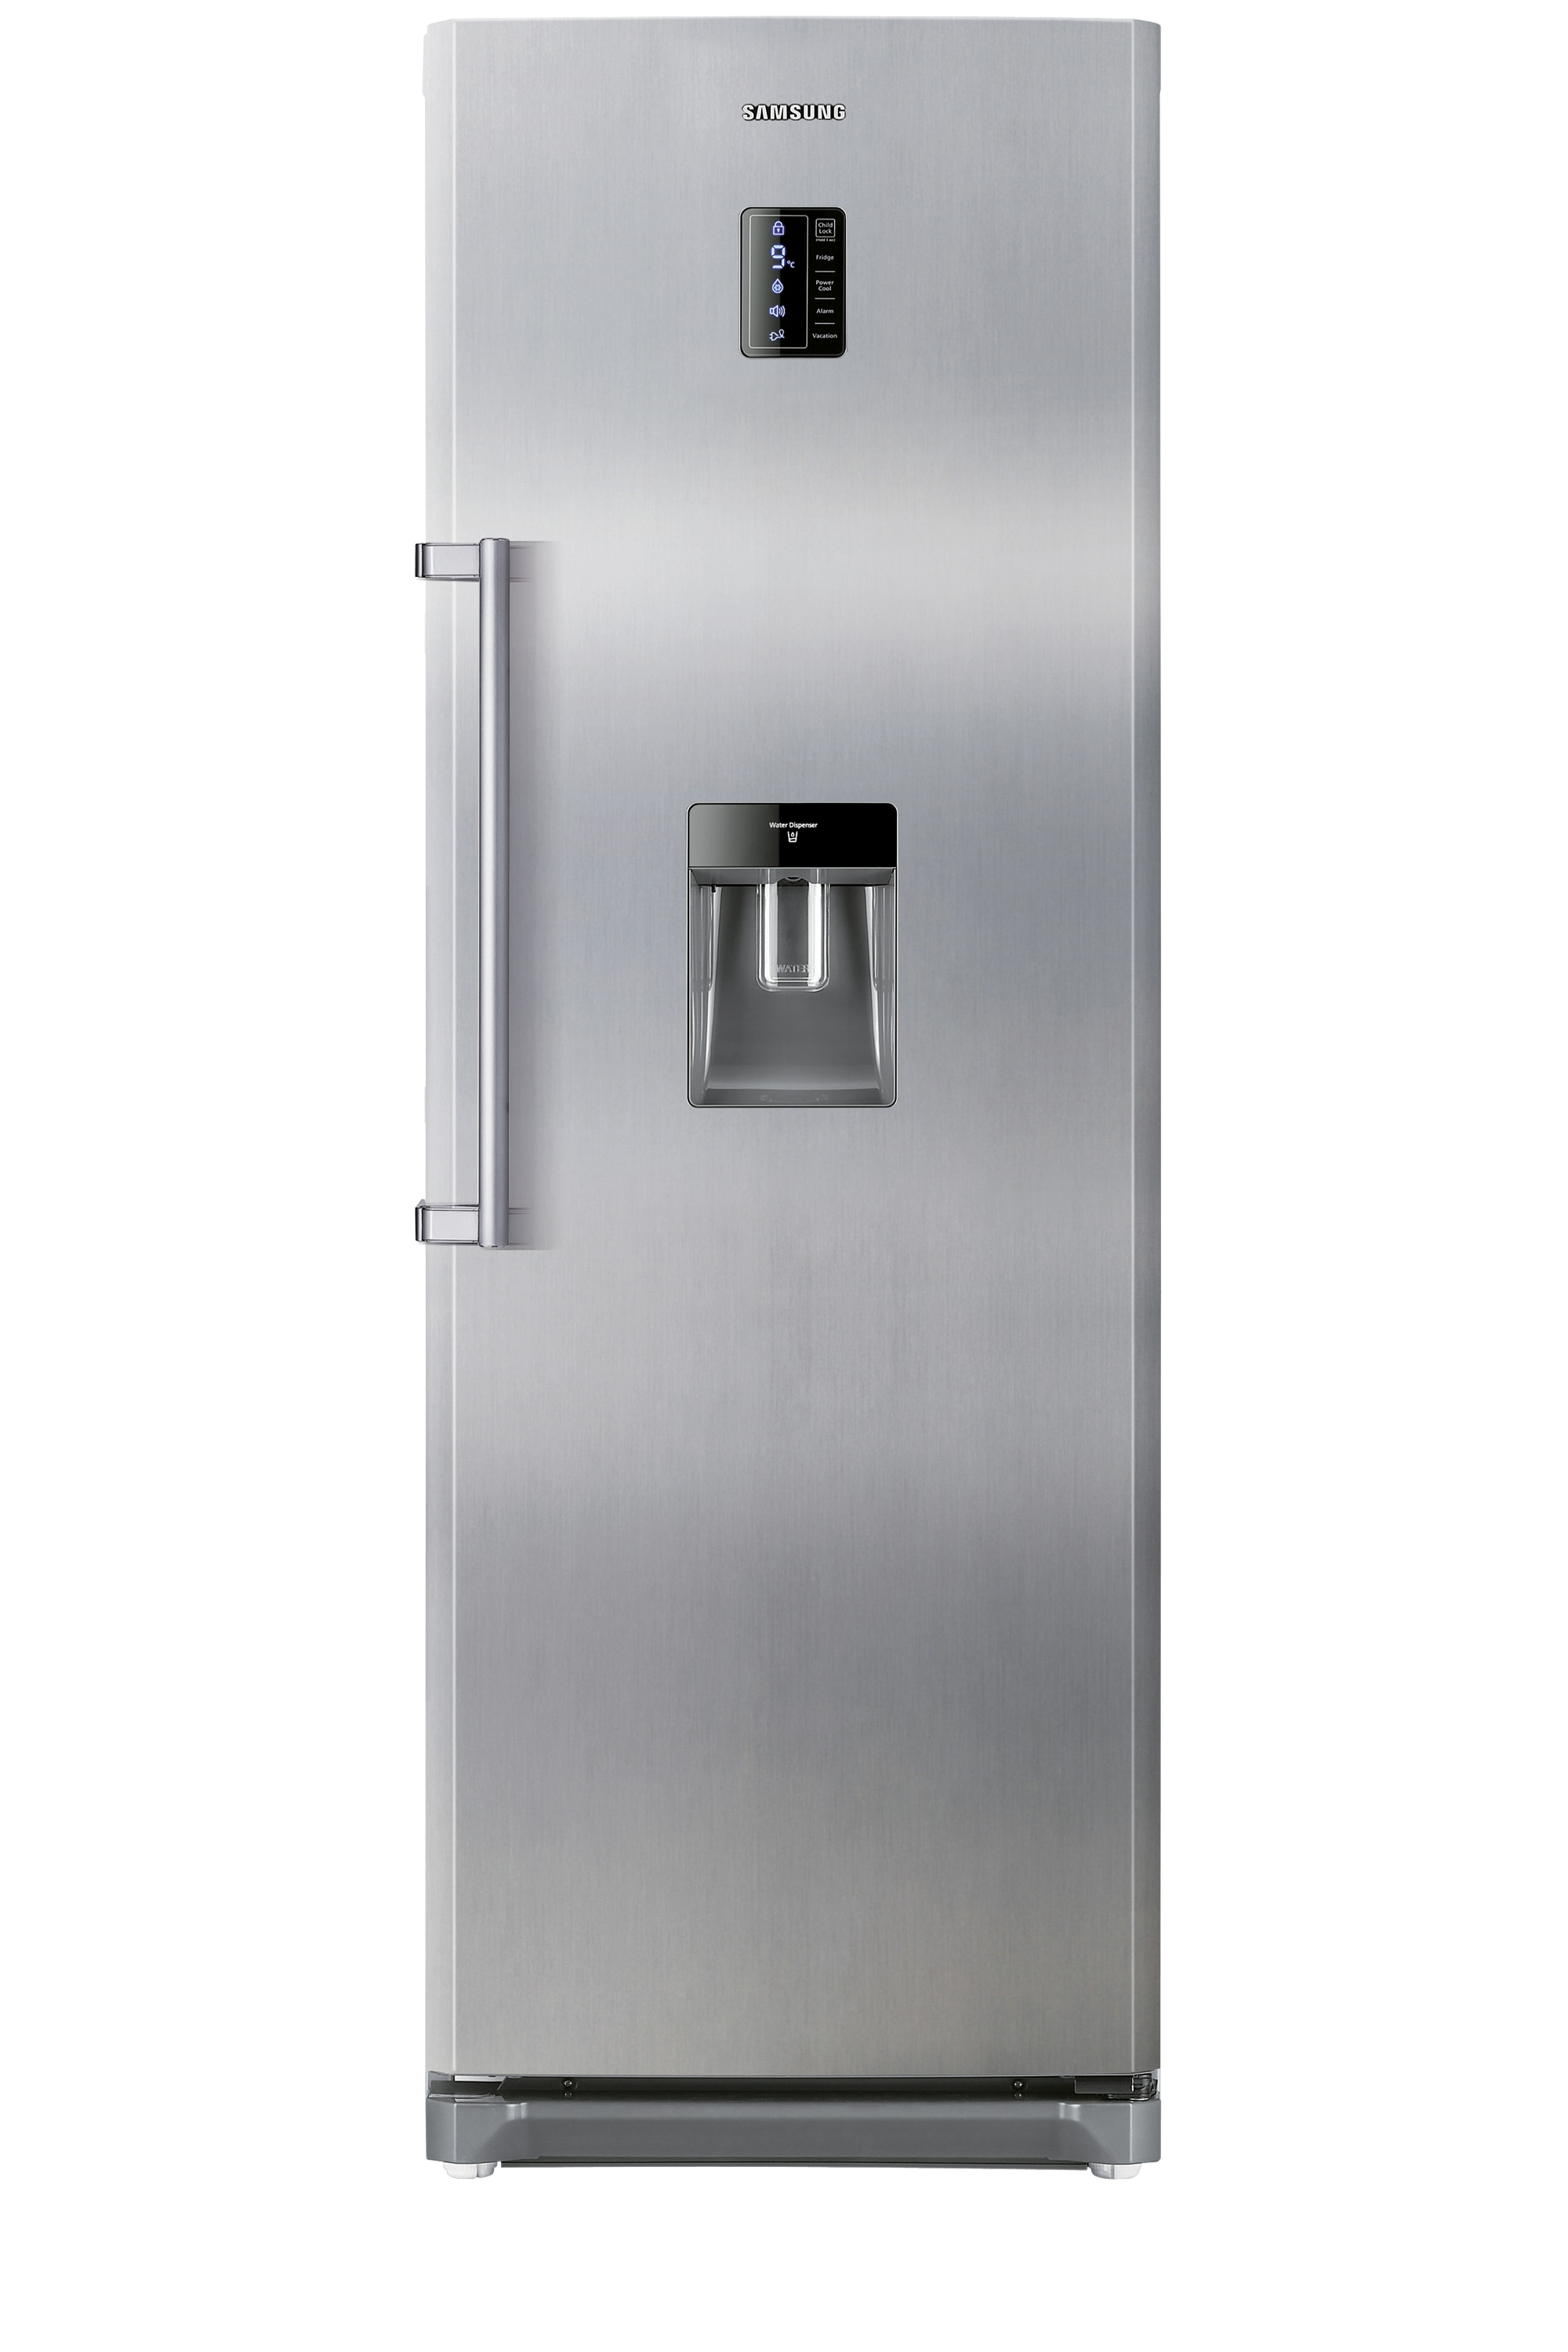 TWIN 1 Door with Easy Bar Handle, 348 L, INOX